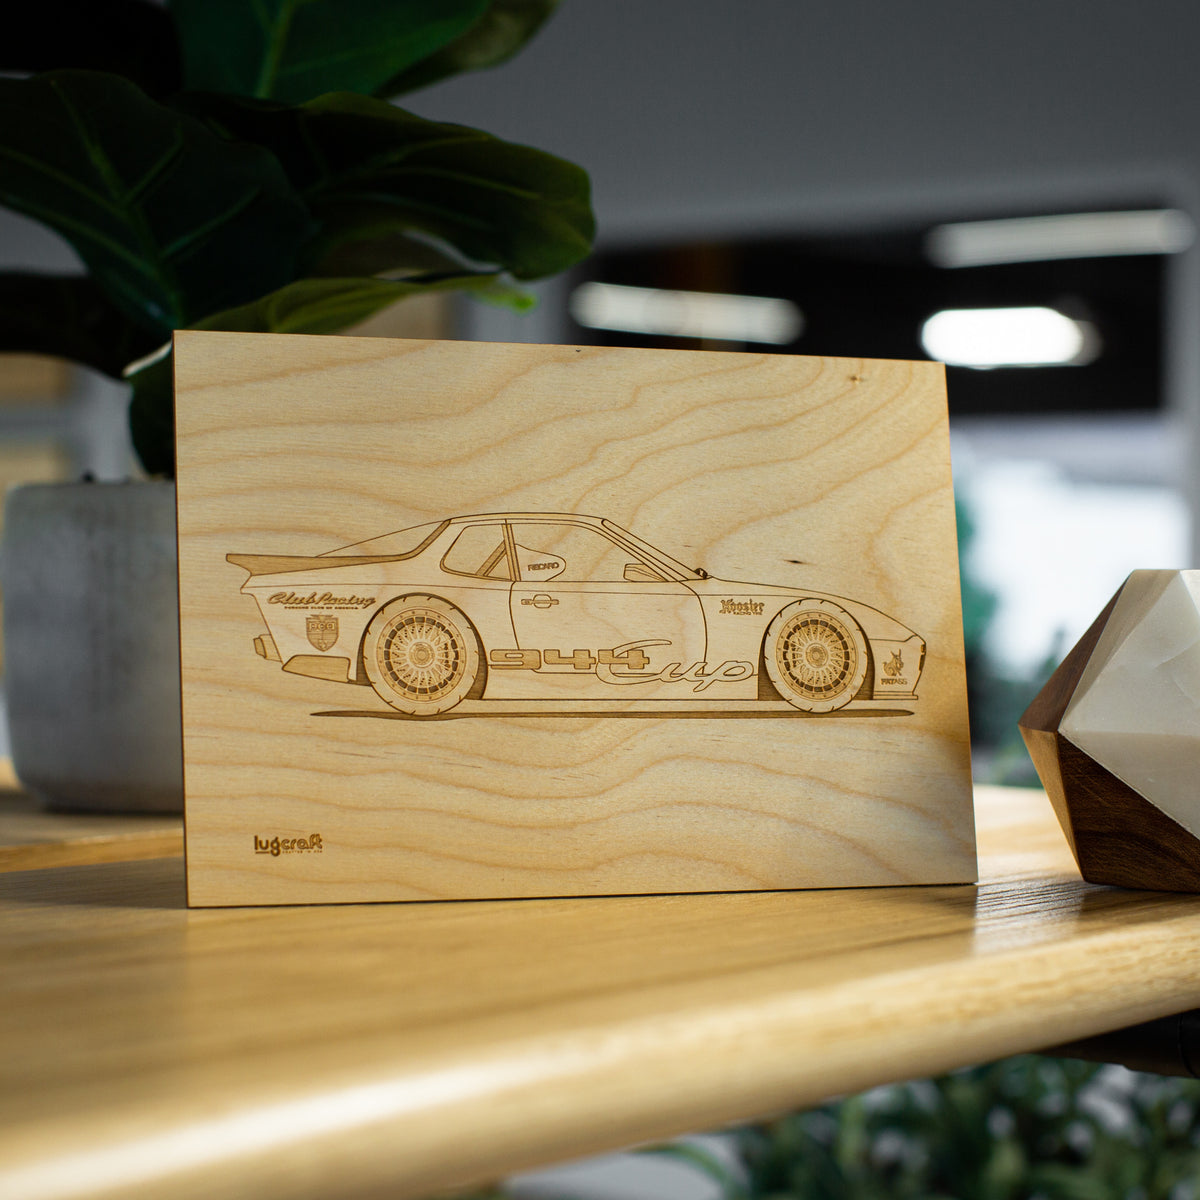 Porsche 944 Cup Collectible Engraving